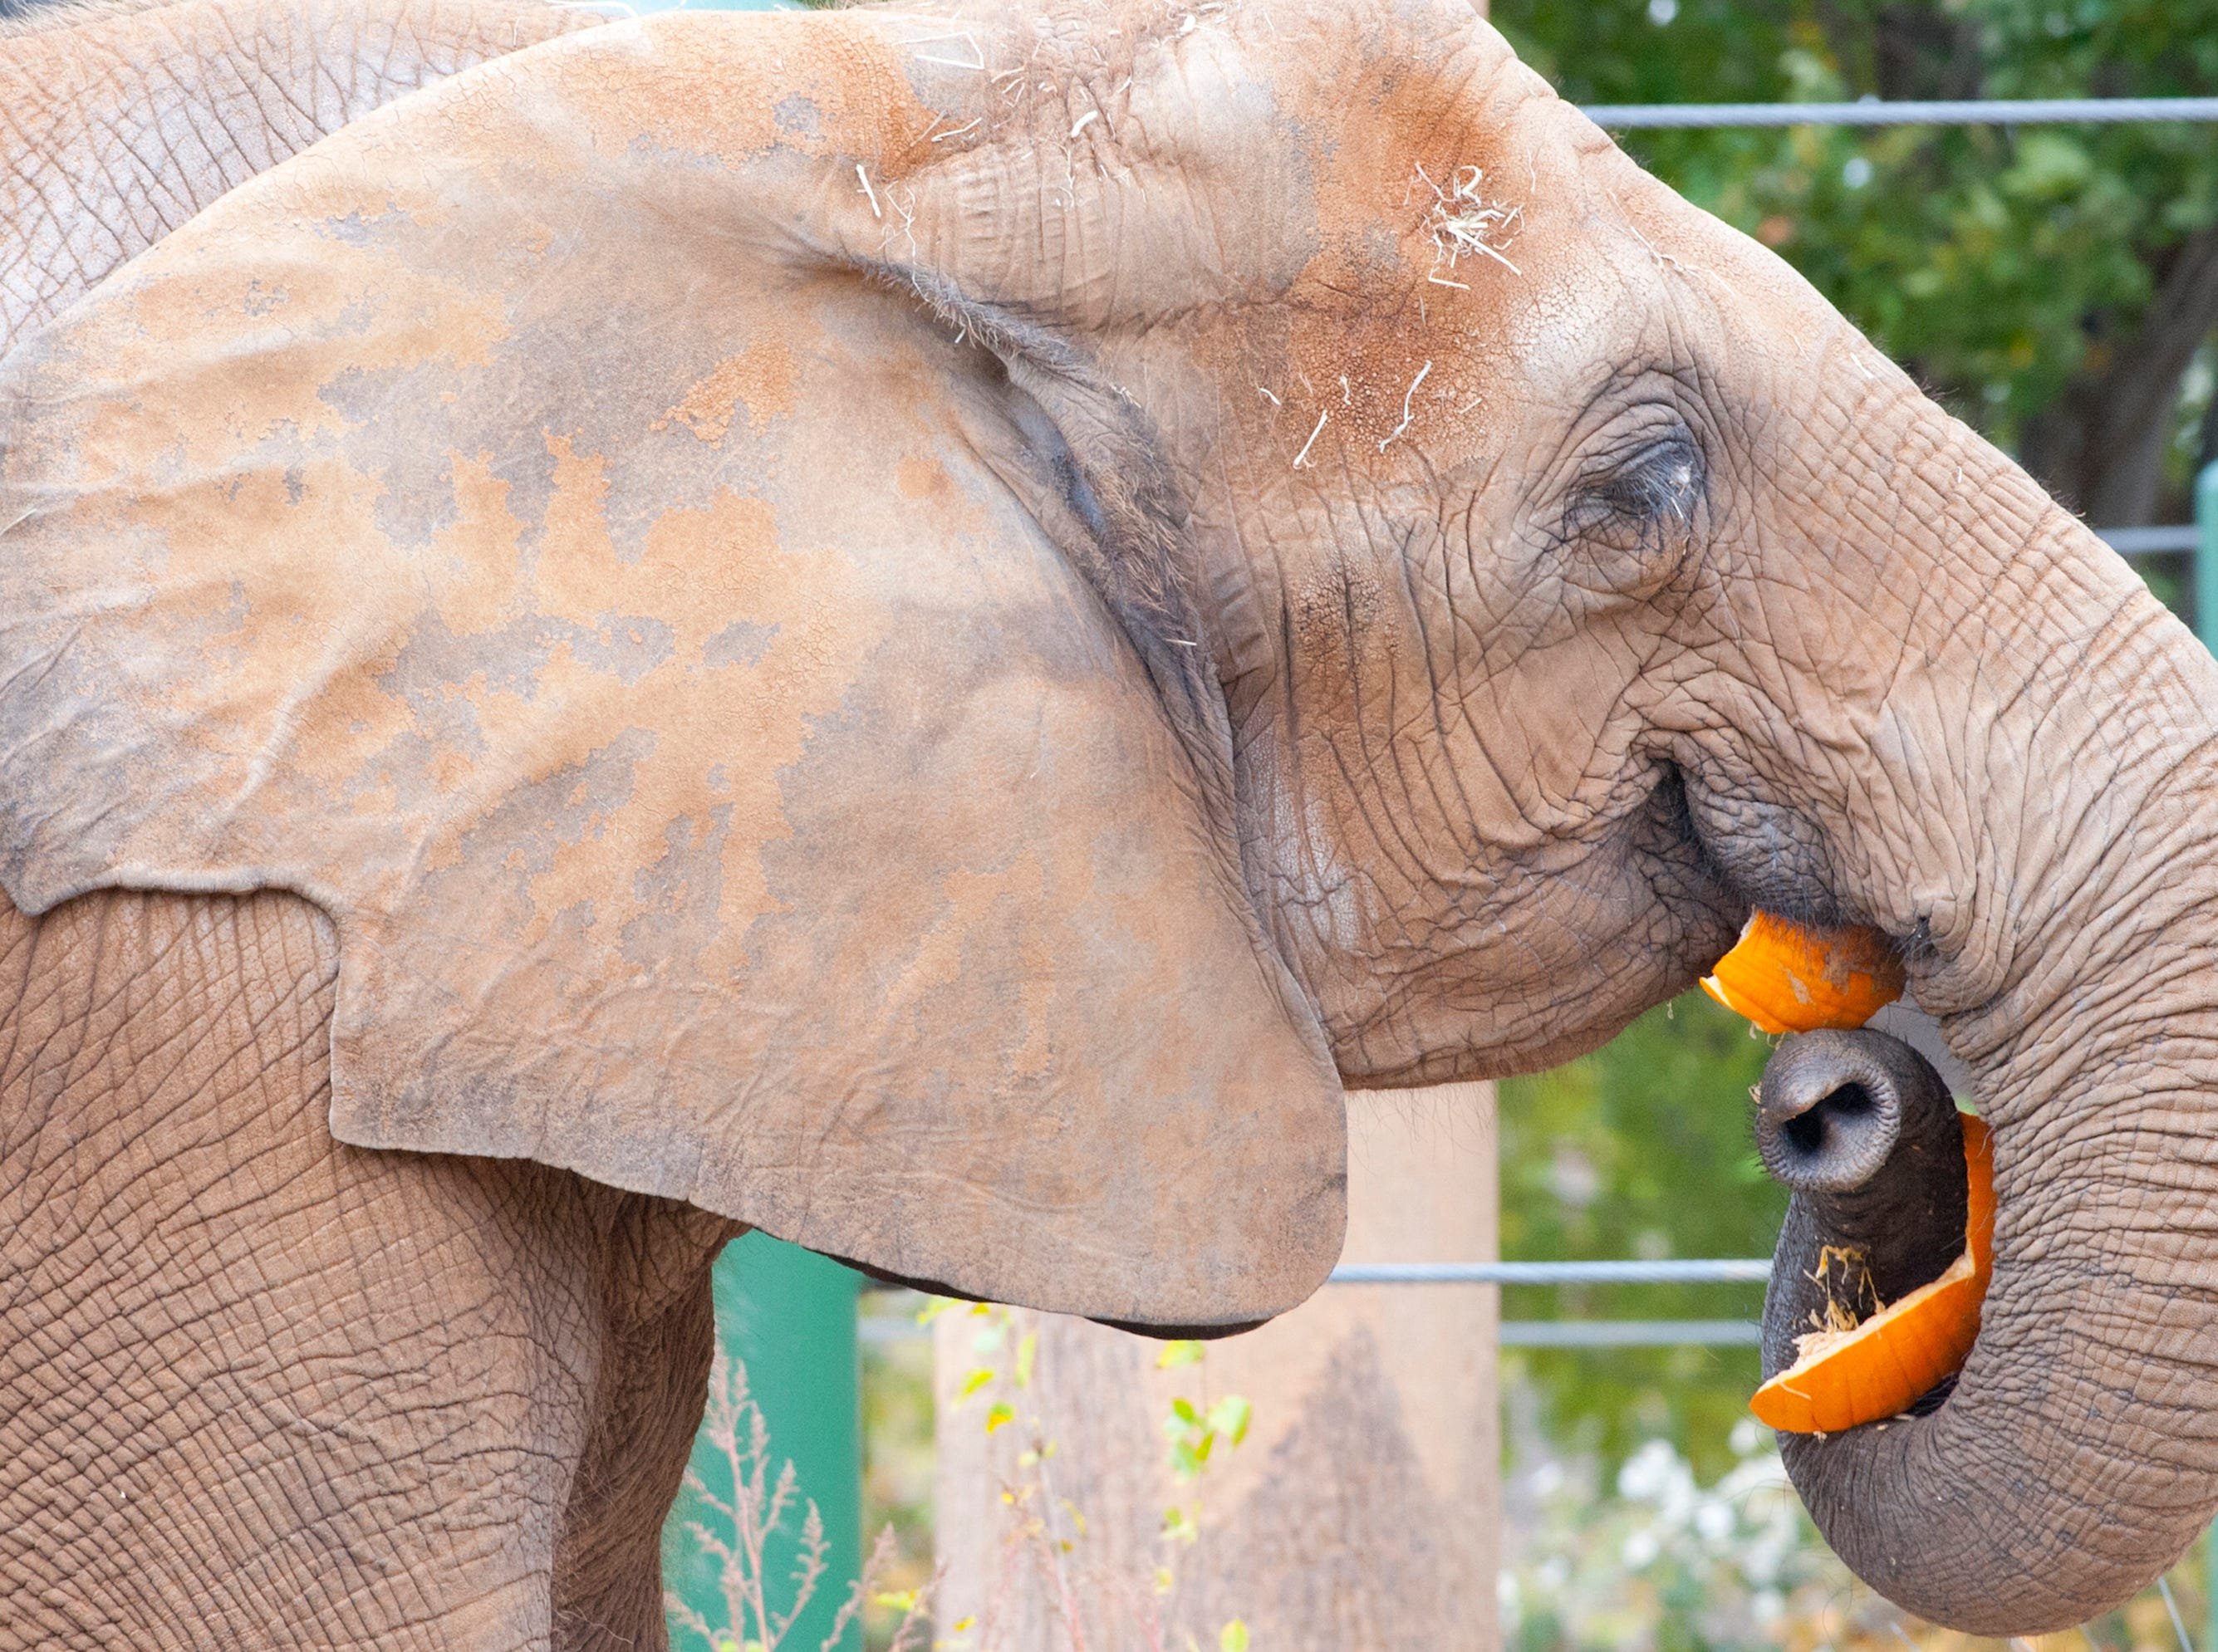 Mickki works on a pumpkin at the Louisville Zoo's annual pumpkin smash. The pumpkins being fed to the animals are from the zoo's Halloween event. November 04, 2018